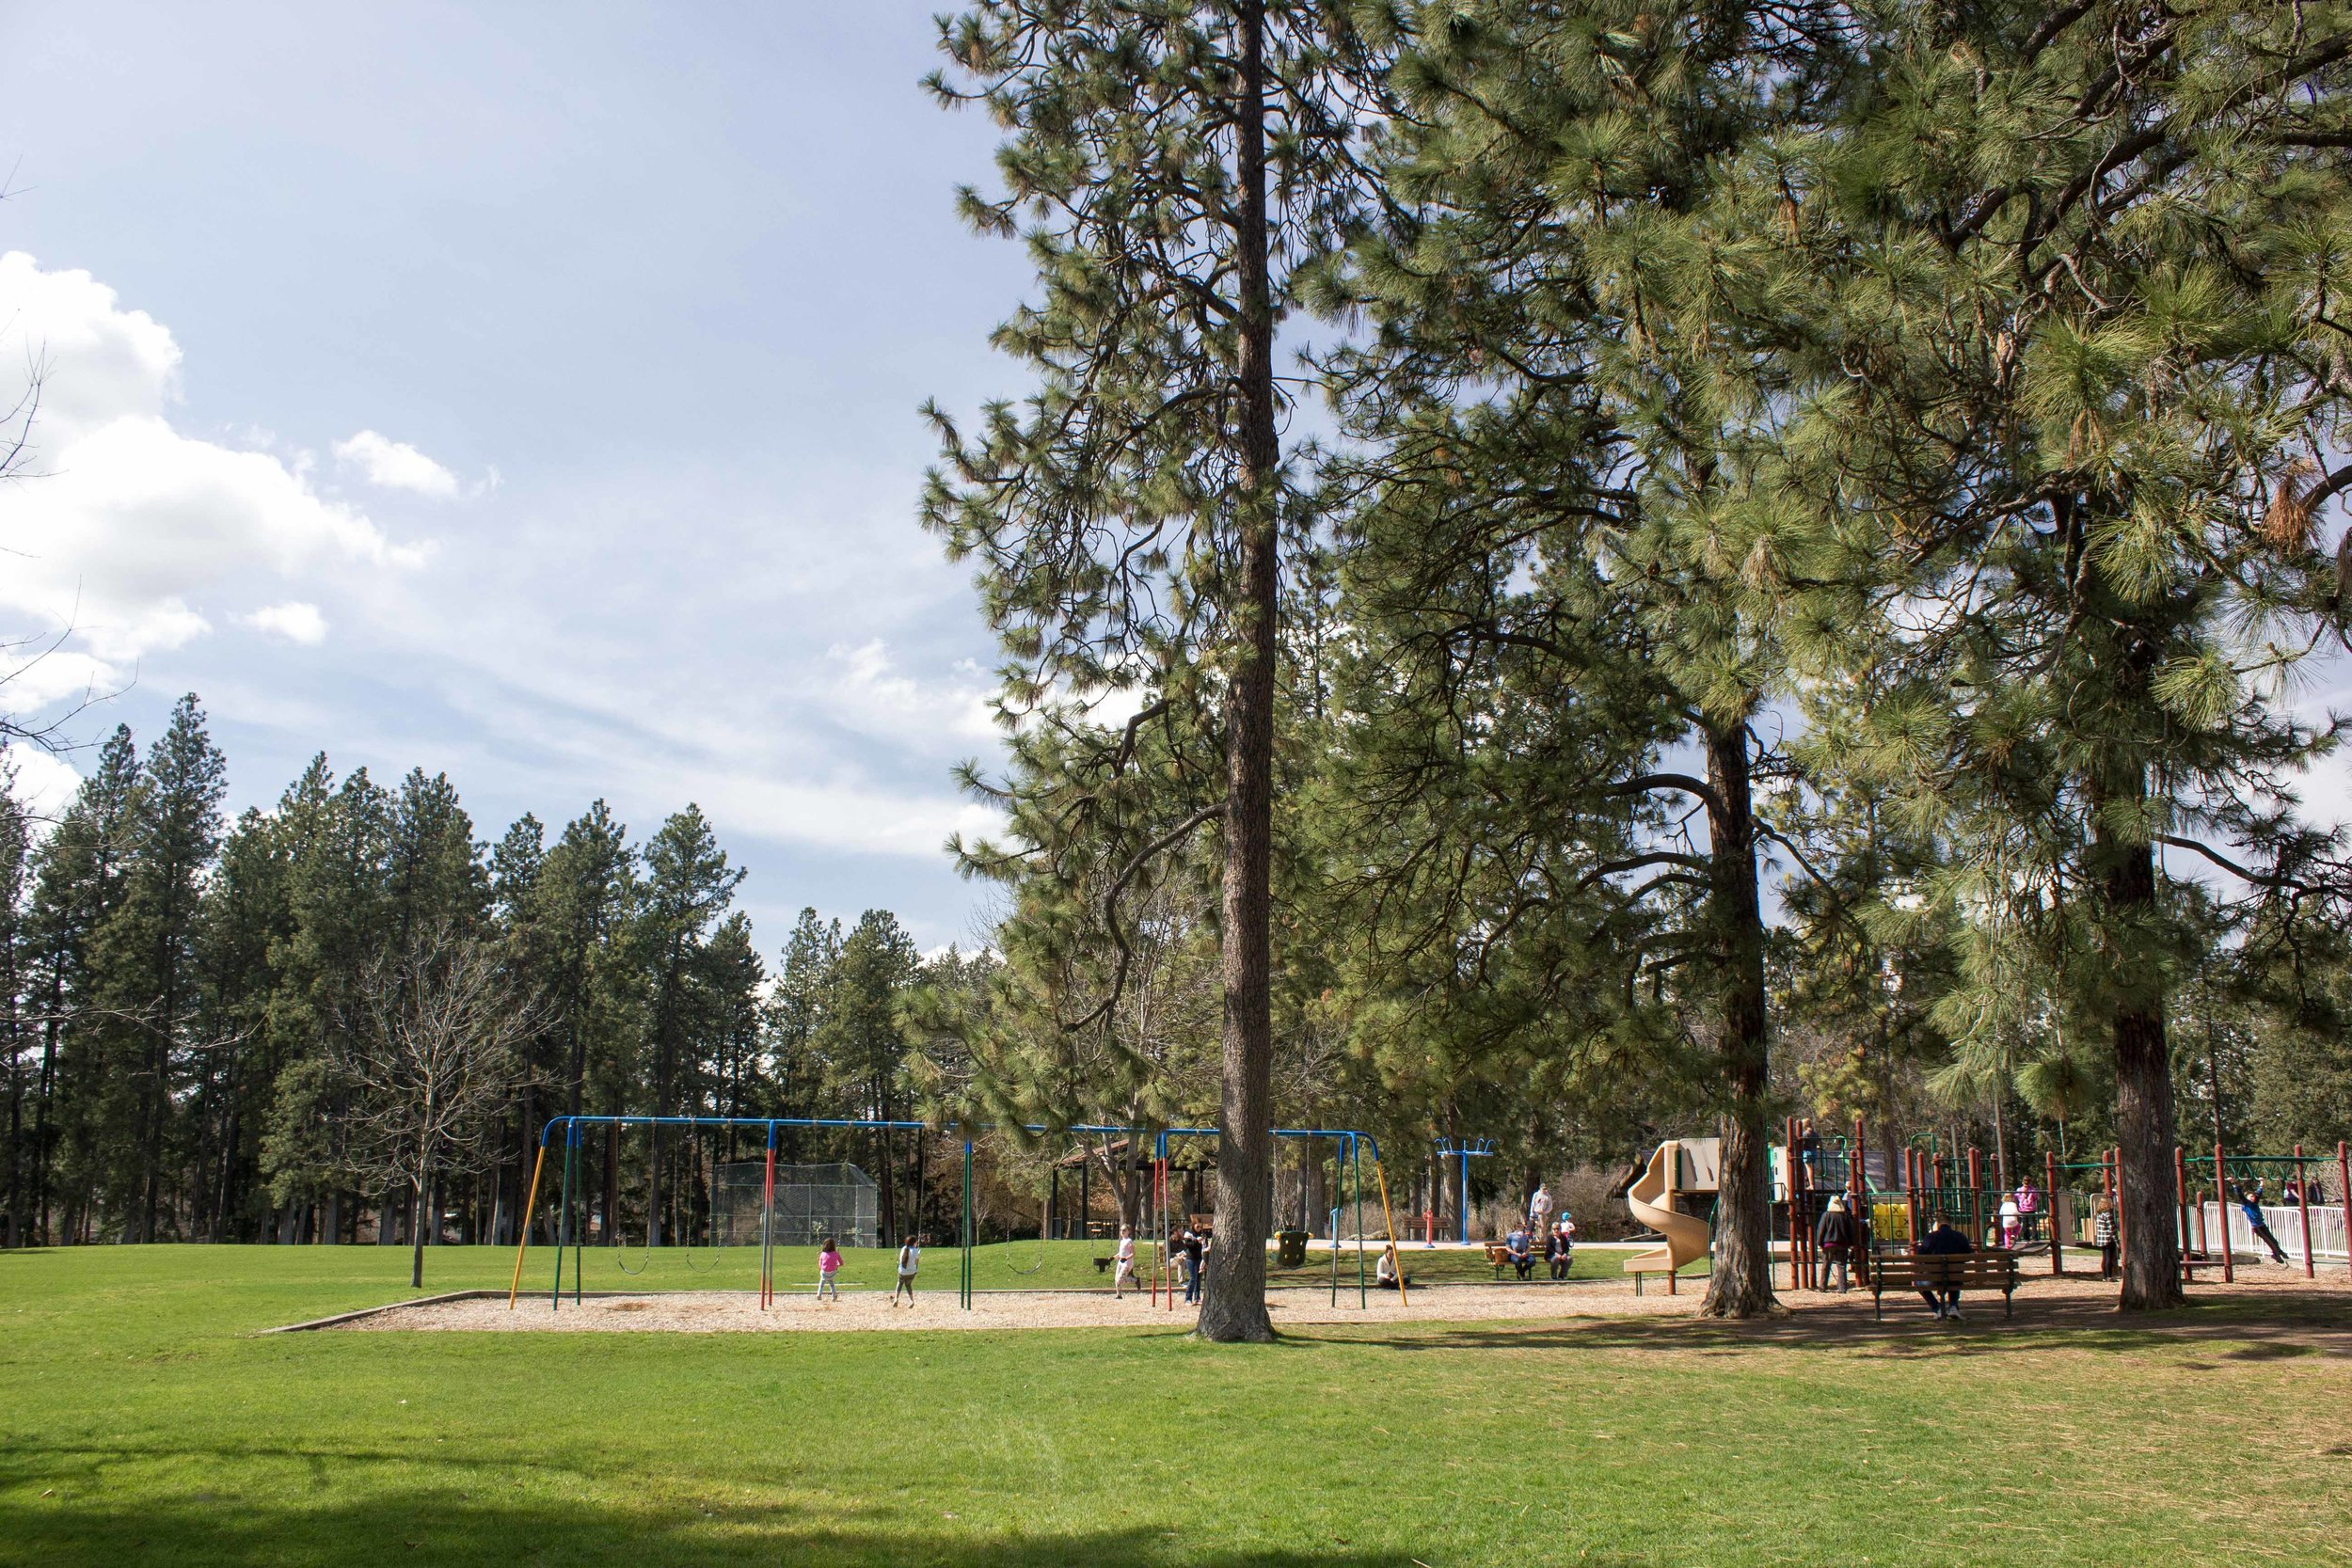 Wide open spaces alongside a playground within Manito Park. Photo by Erica Simek Sloniker.